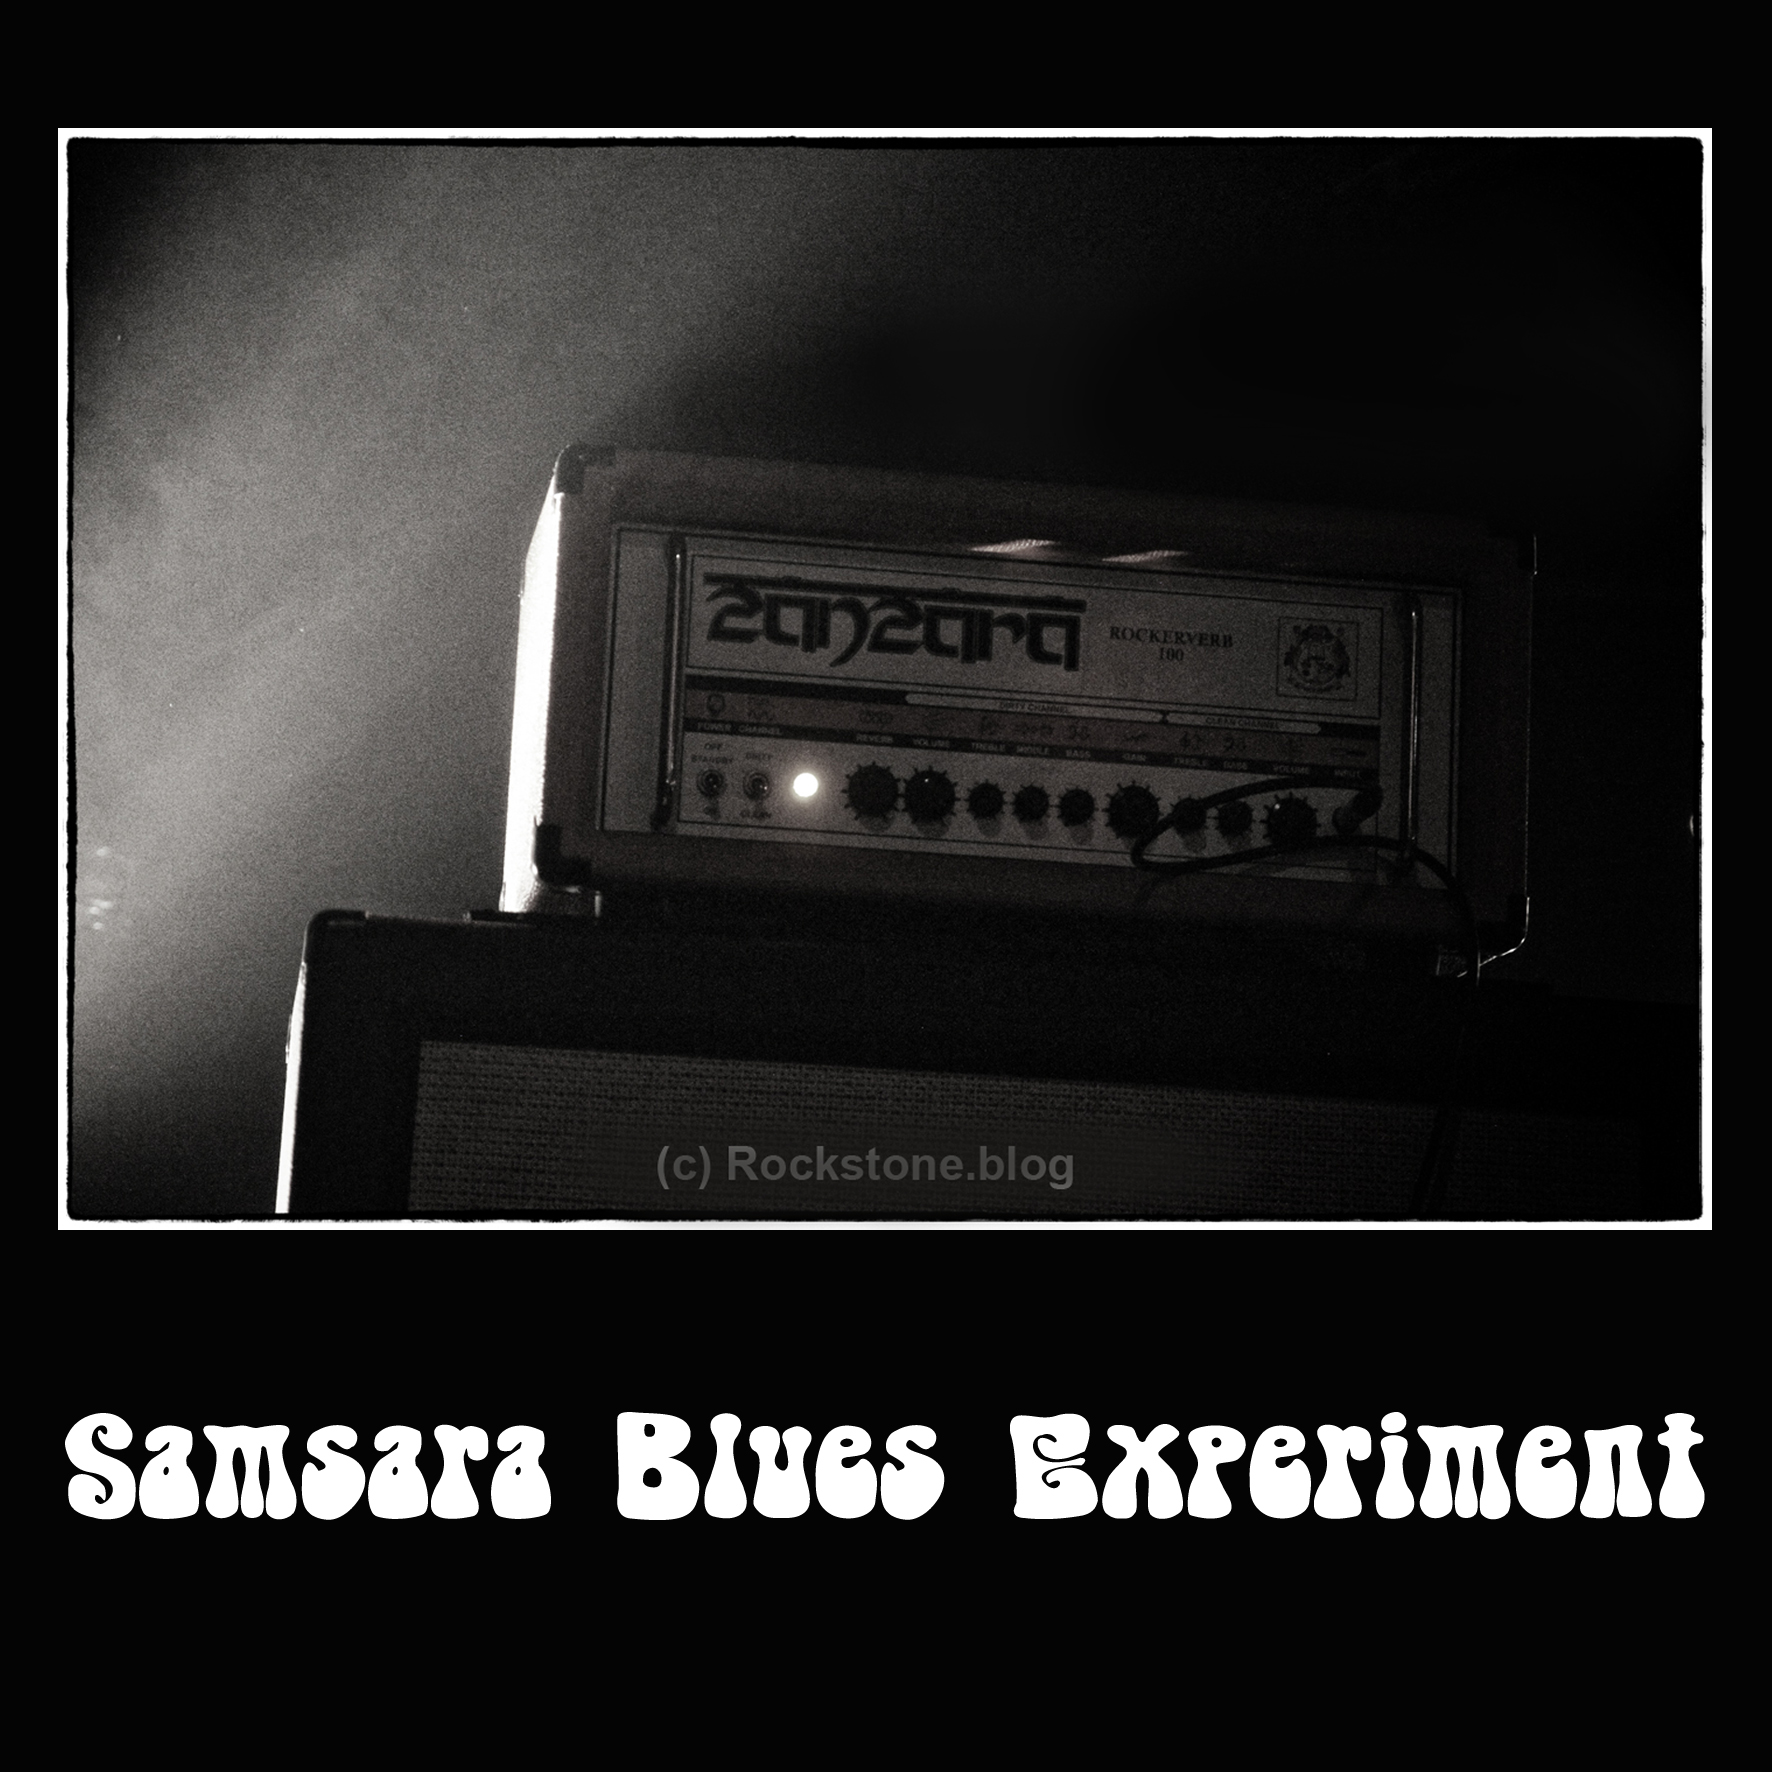 samsara blues IGR